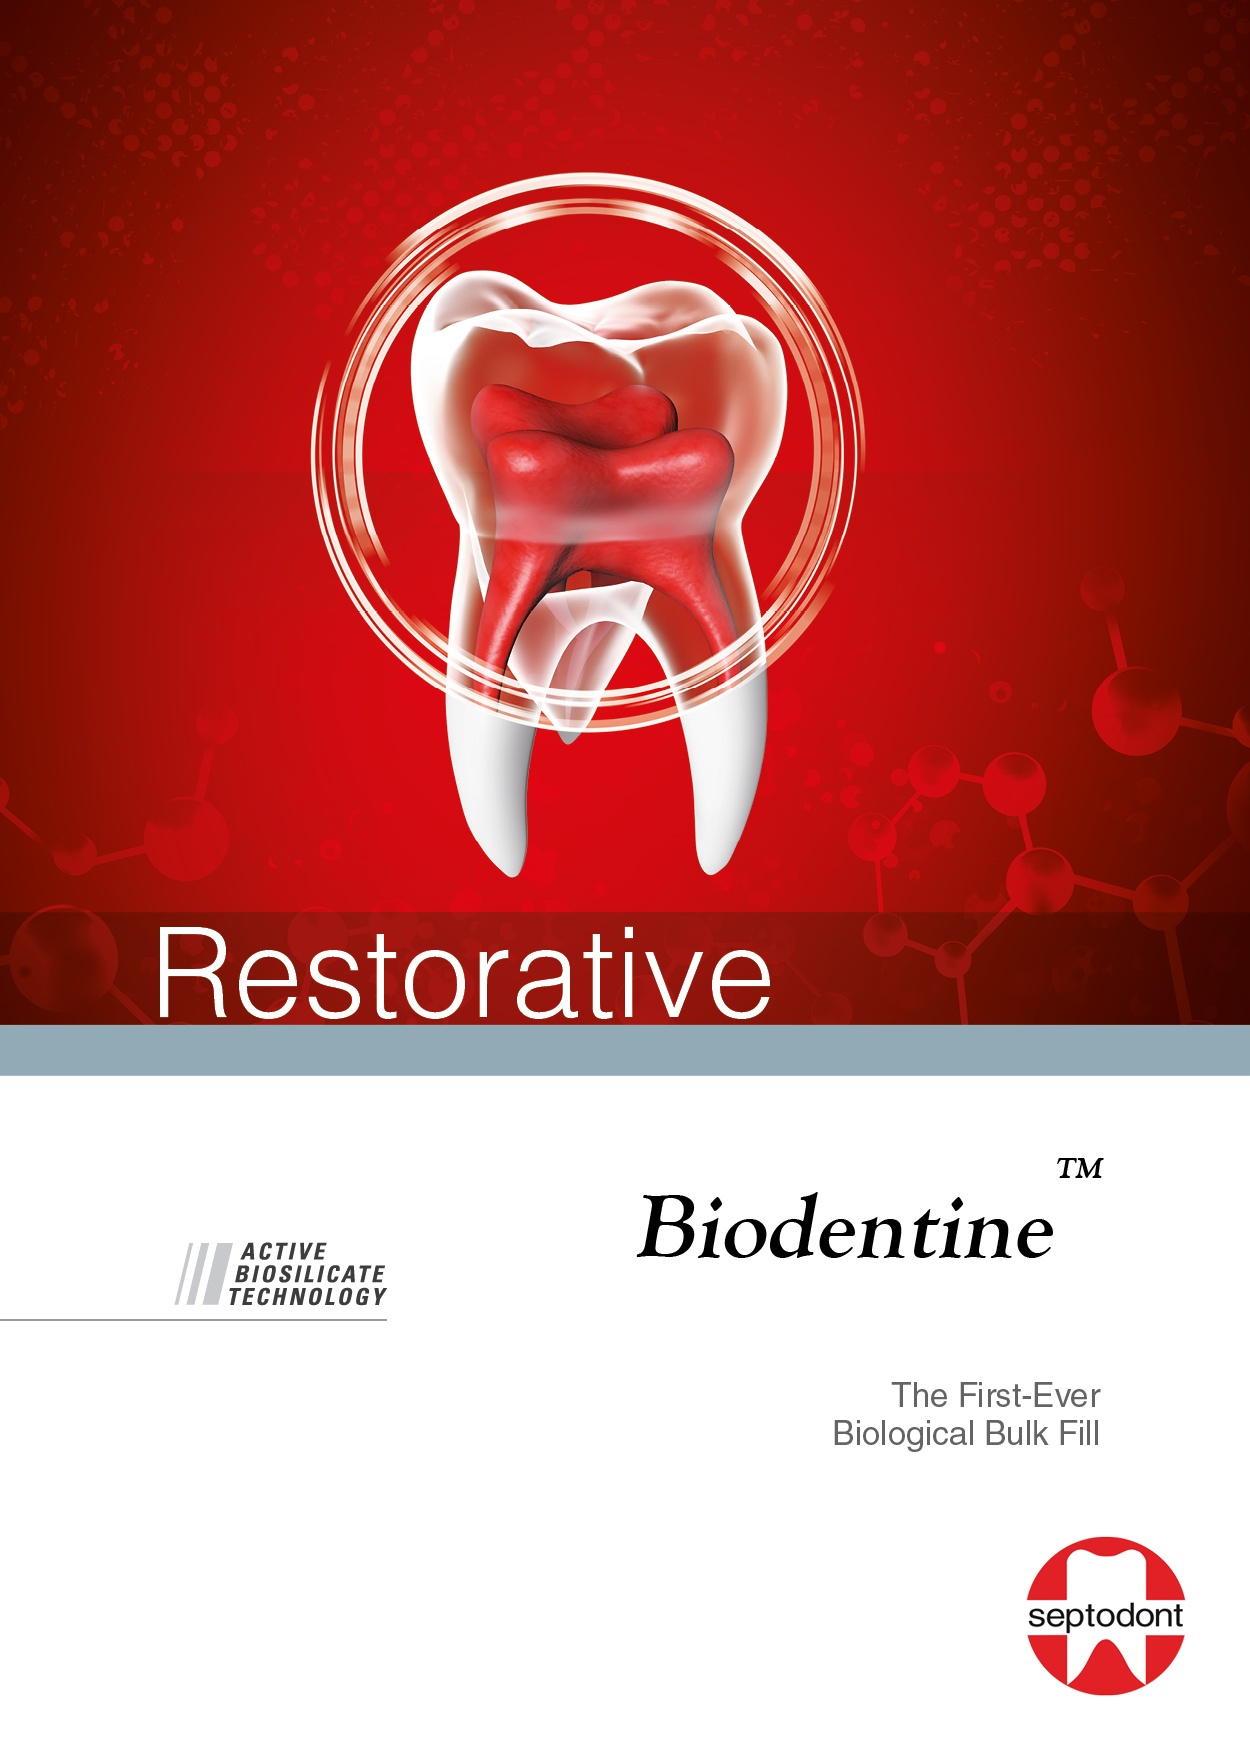 Biodentine Restorative Brochure